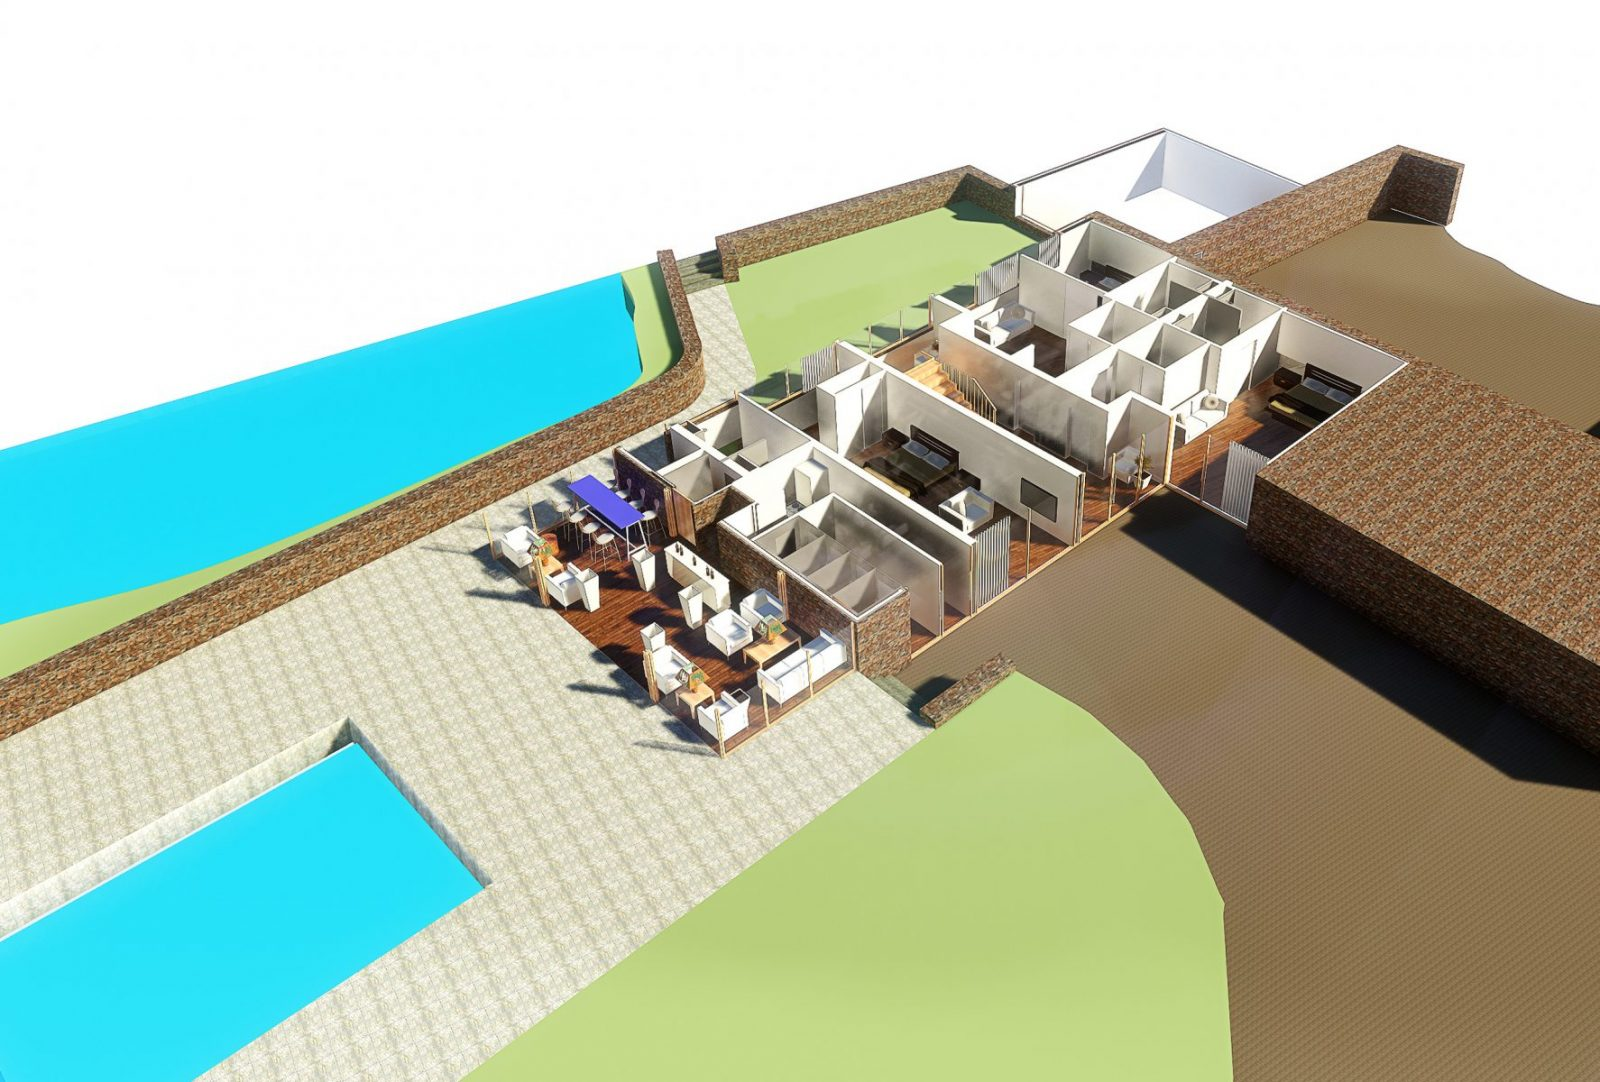 jersey hotel annex extension hospitality architecture jersey architects11